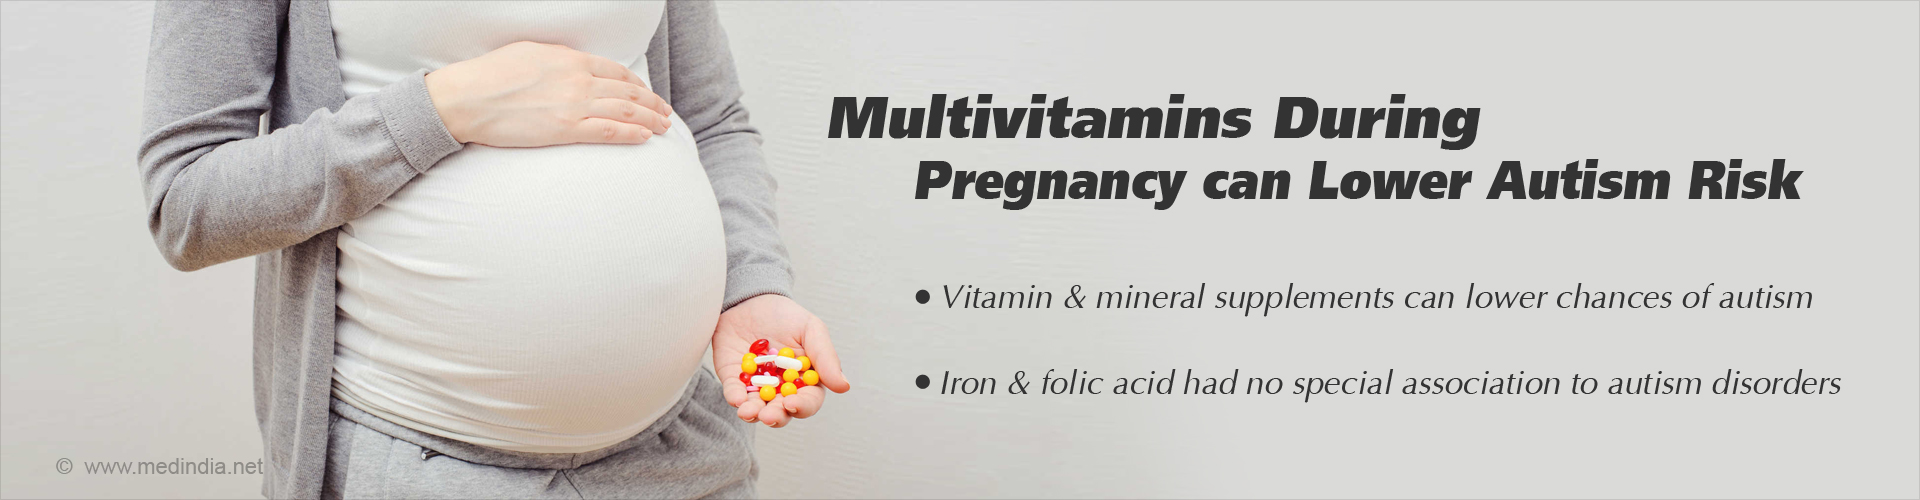 Multivitamins During Pregnancy Can Lower Risk of Autism